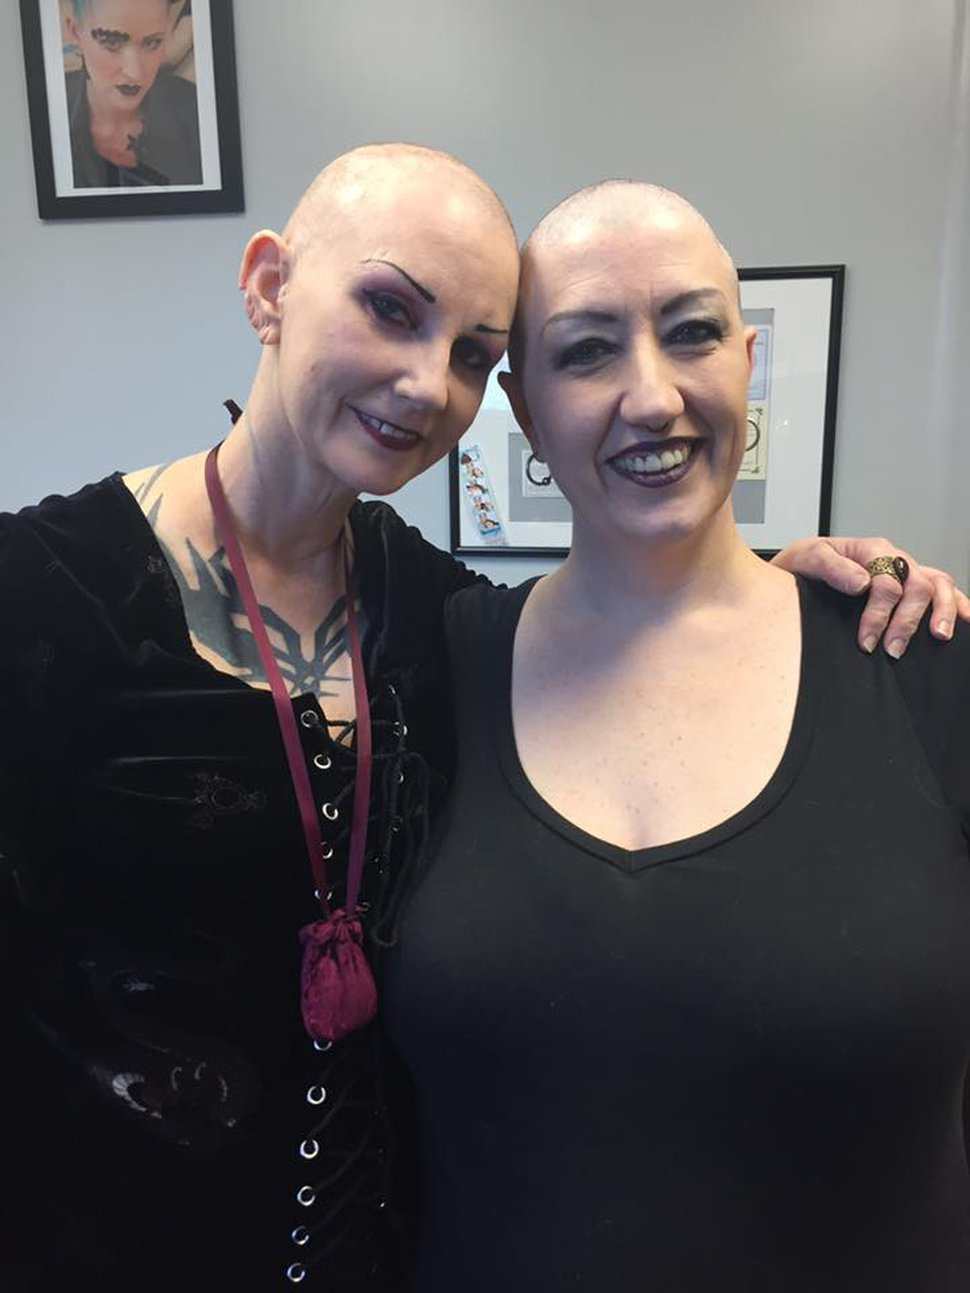 (Courtesy photo) Cinamon Hadley and Tracy Painter, heads shaved in solidarity for Hadley's chemo treatments.